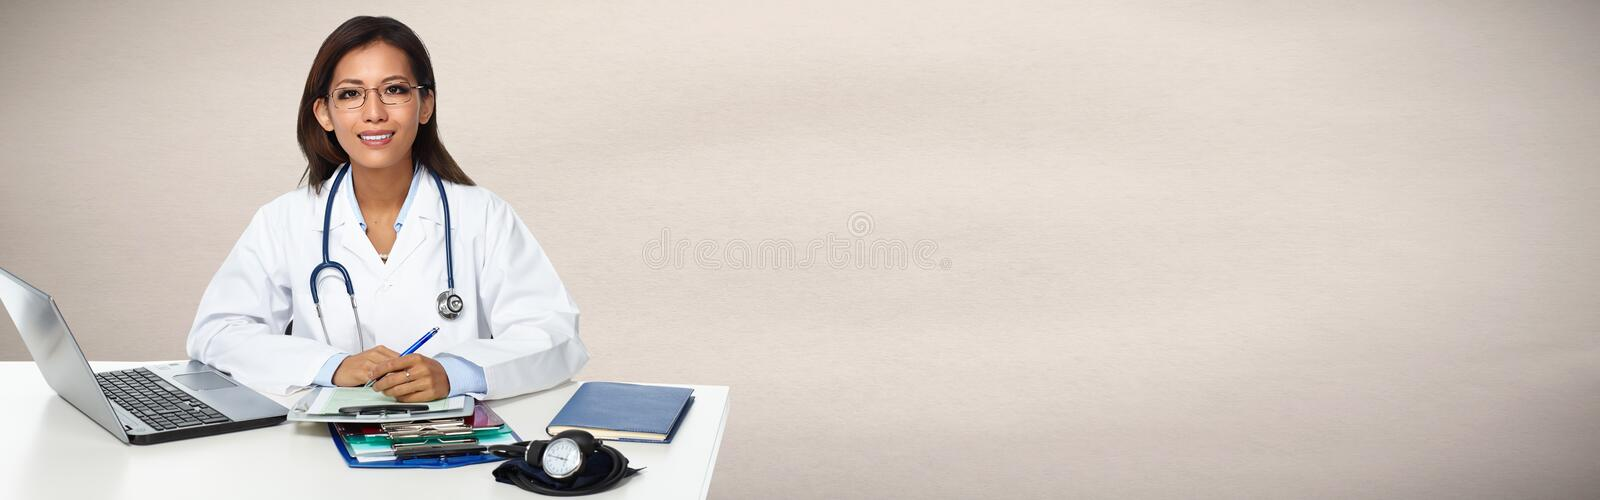 Chinese doctor woman. stock photo